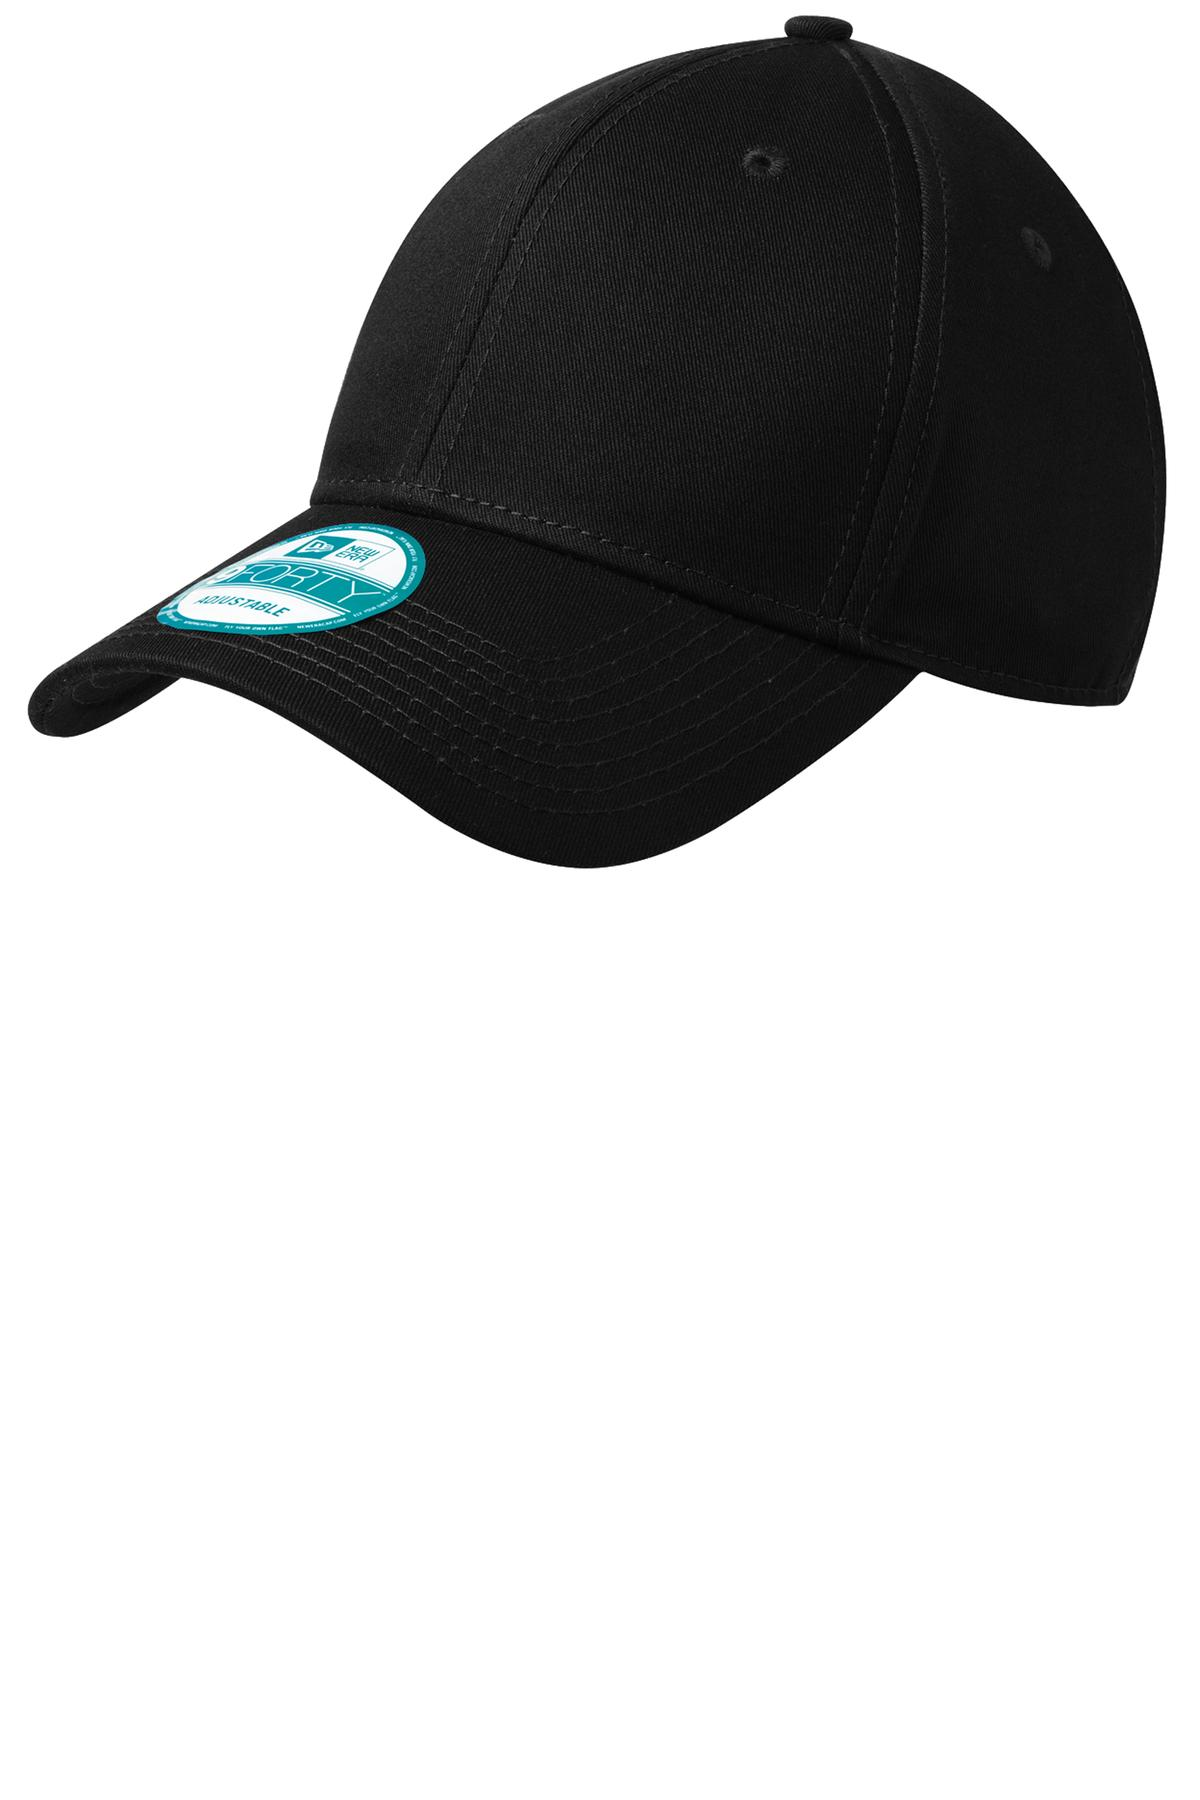 New Era® - Adjustable Structured Cap.-New Era